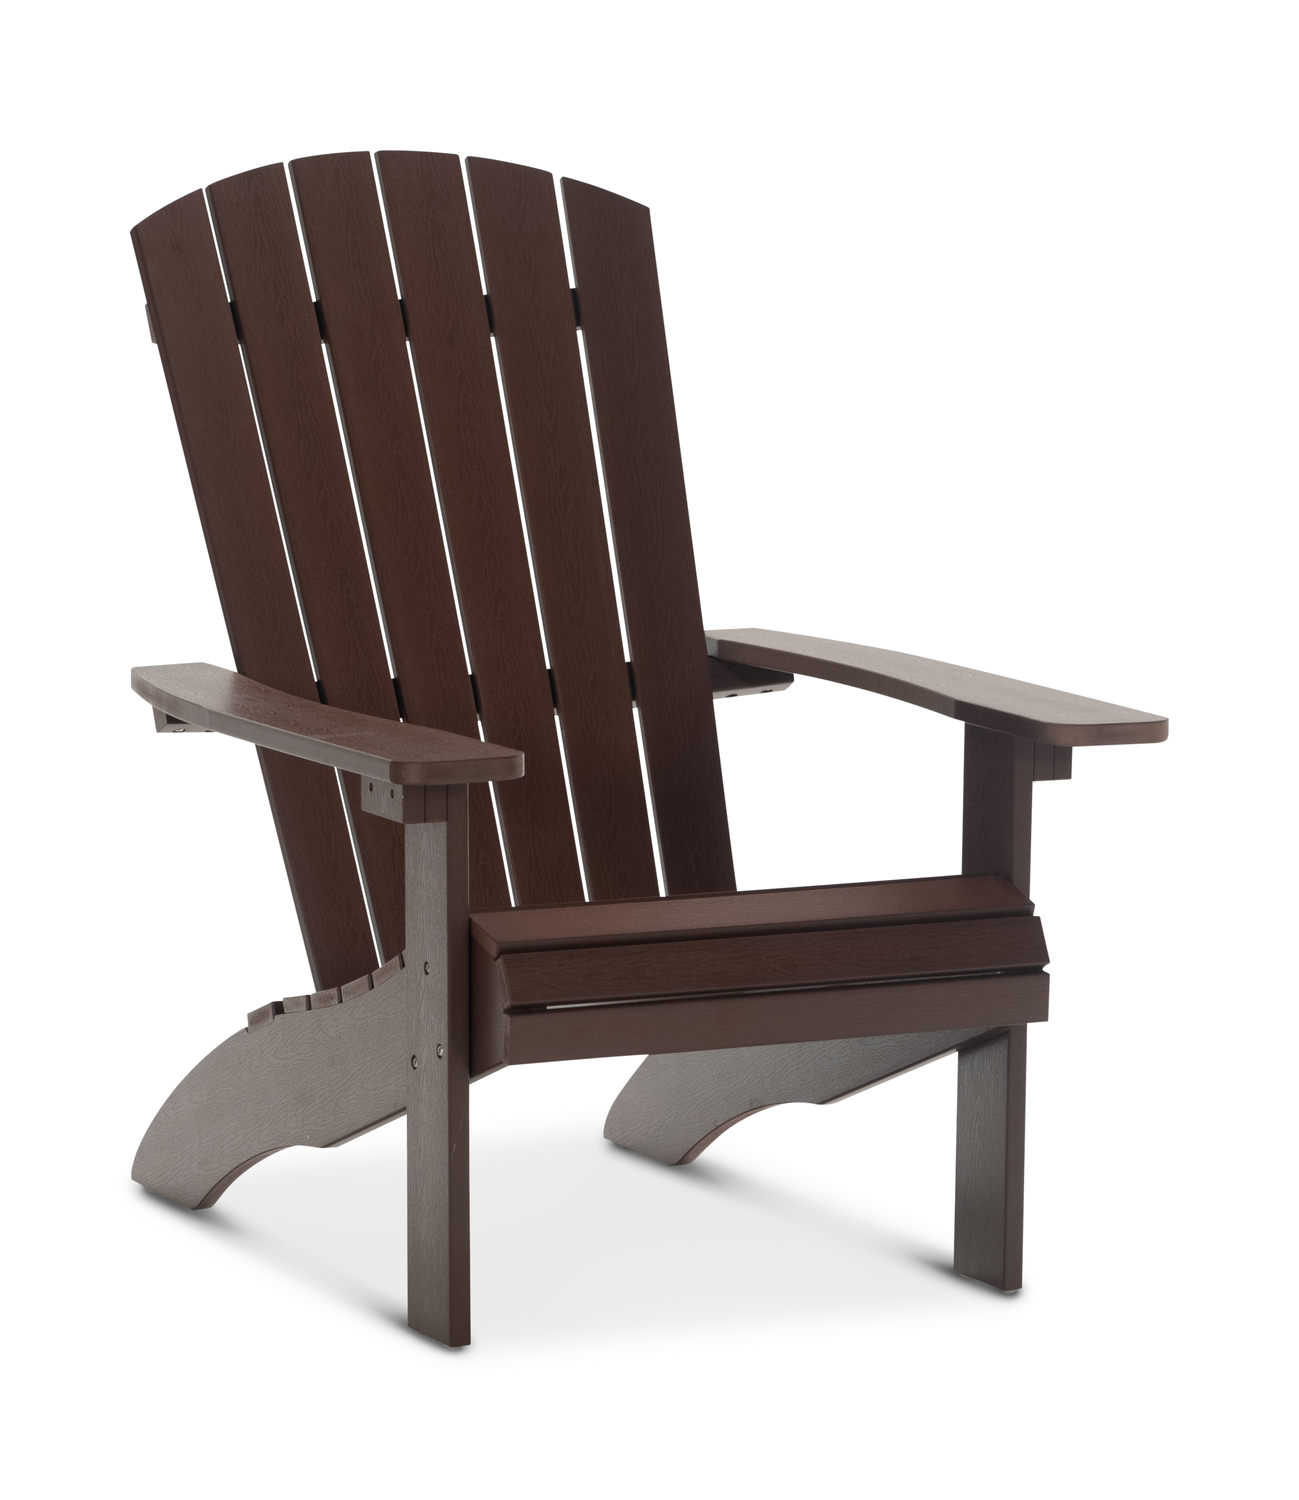 Adirondack Chair By Furniture Creations Direct Dock86